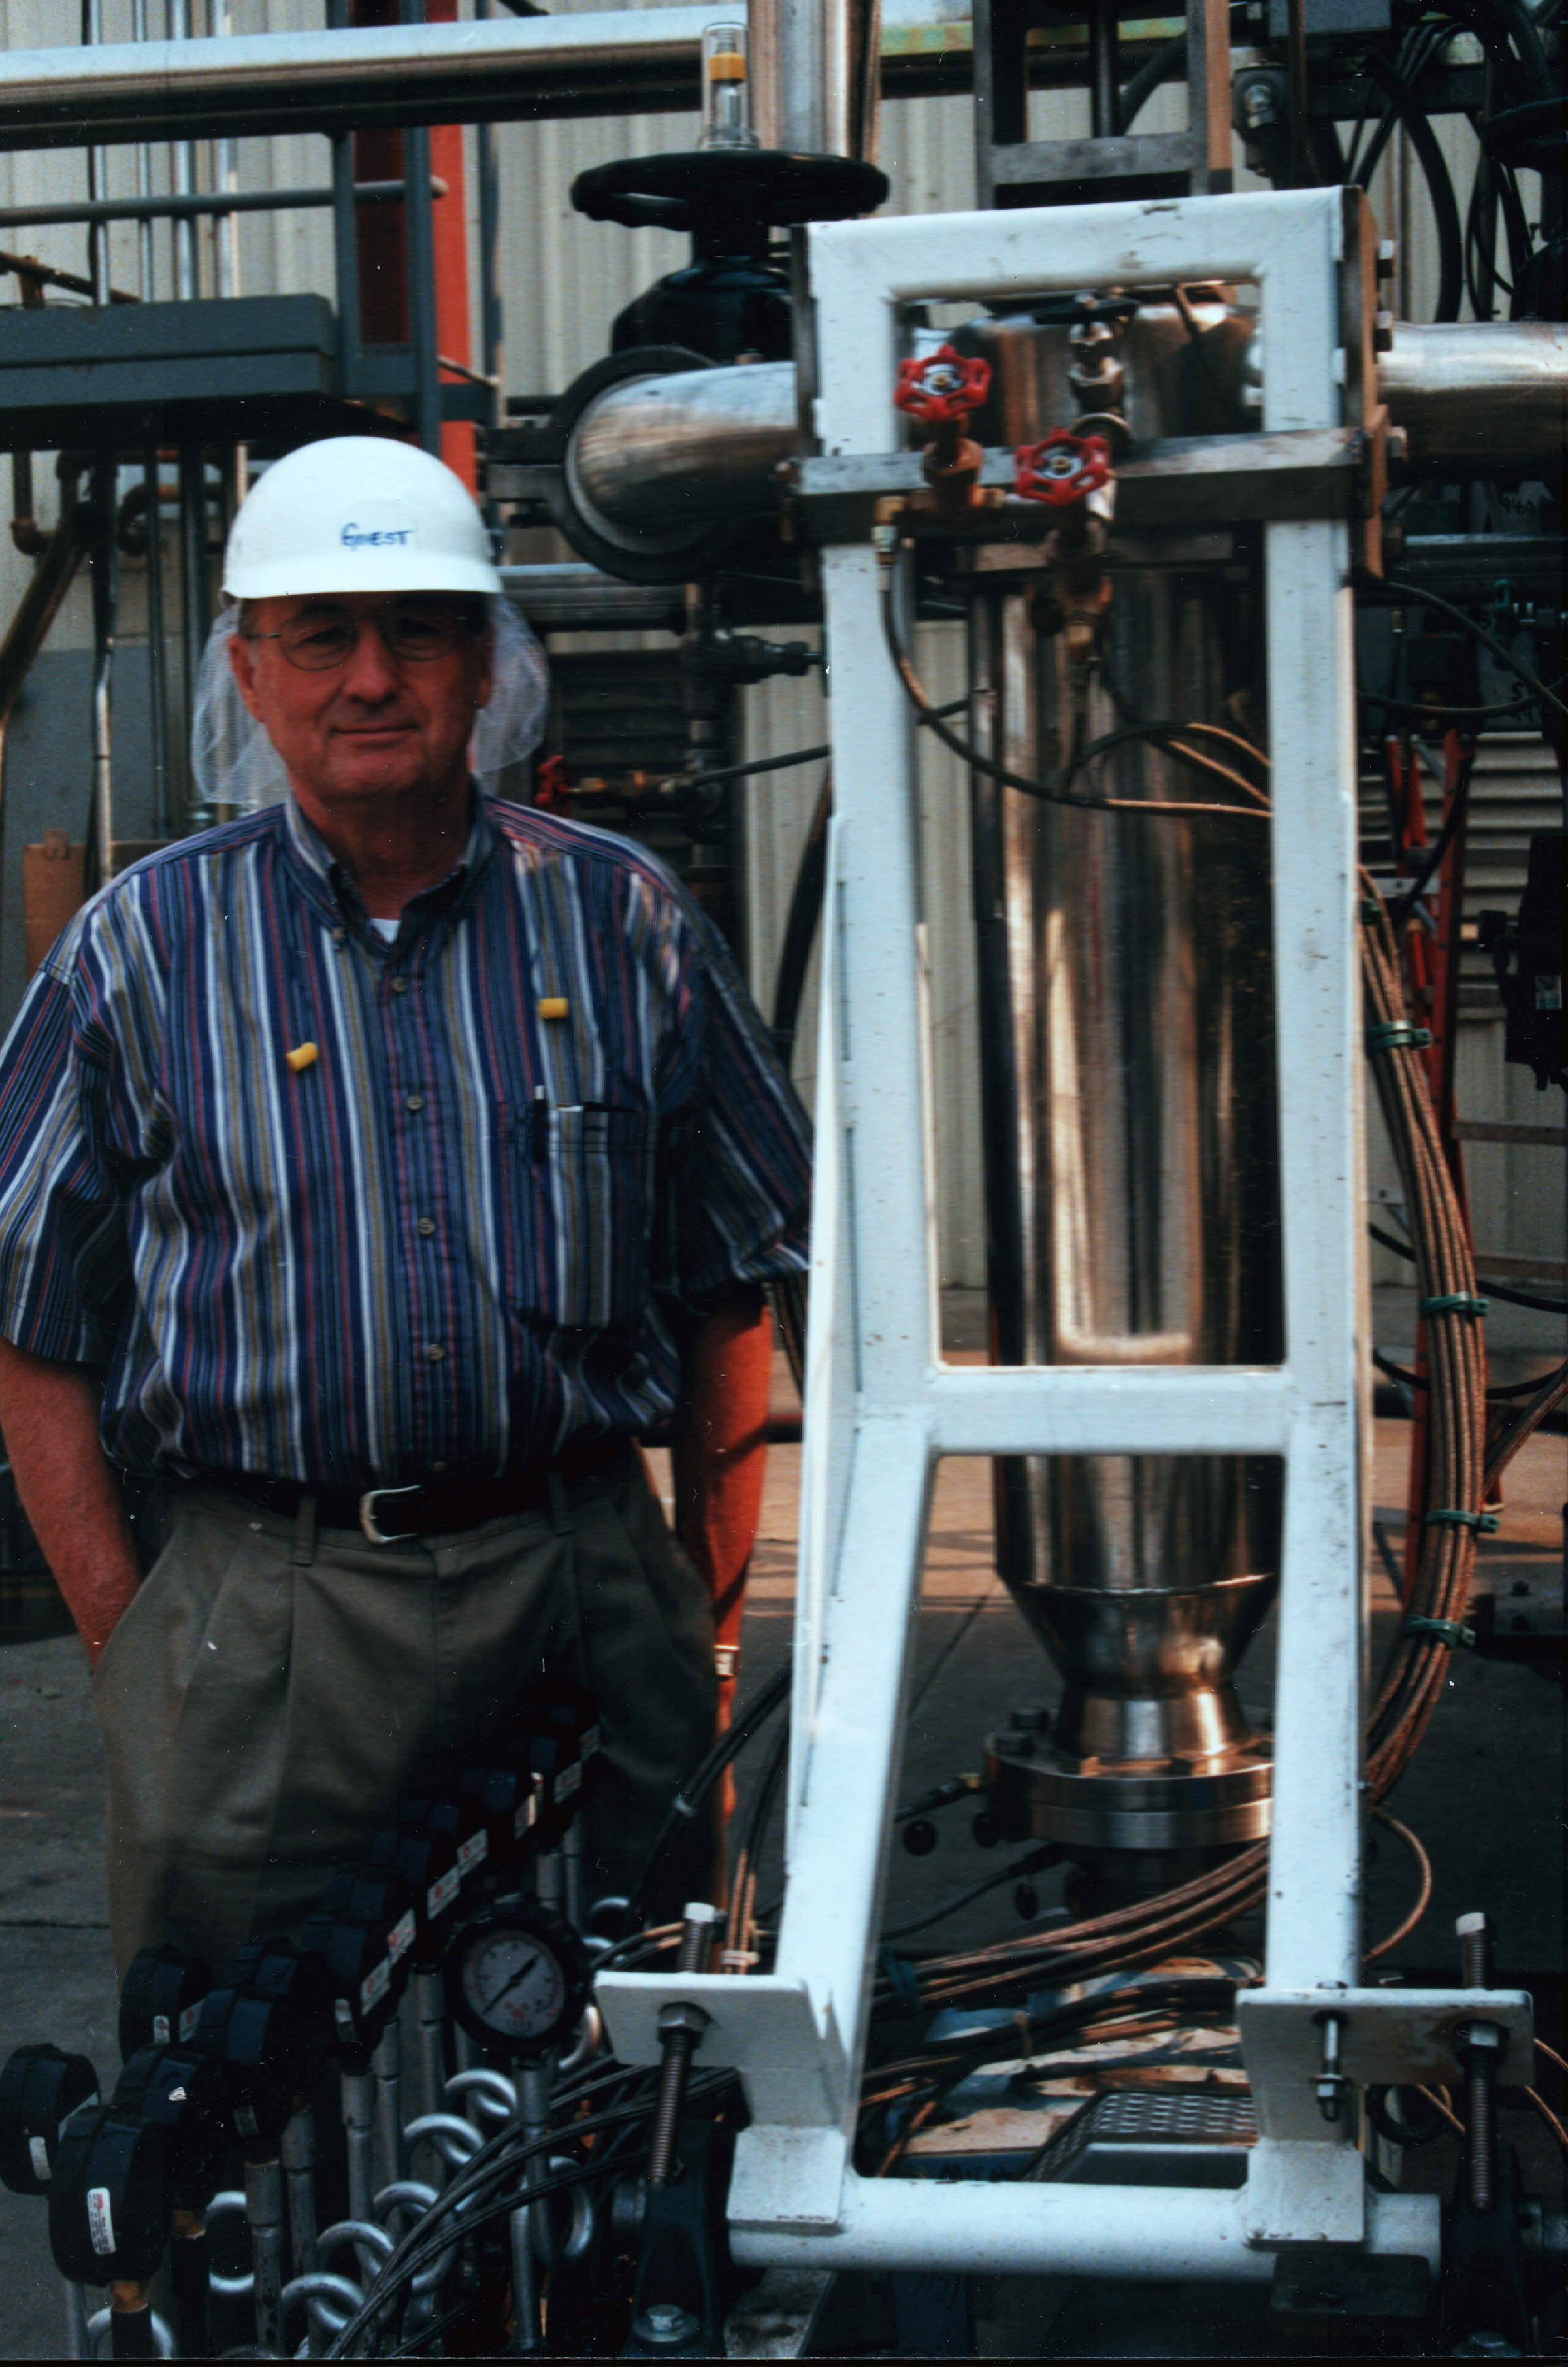 Inventor and Founder, Glenn Spencer, with an aseptic application.